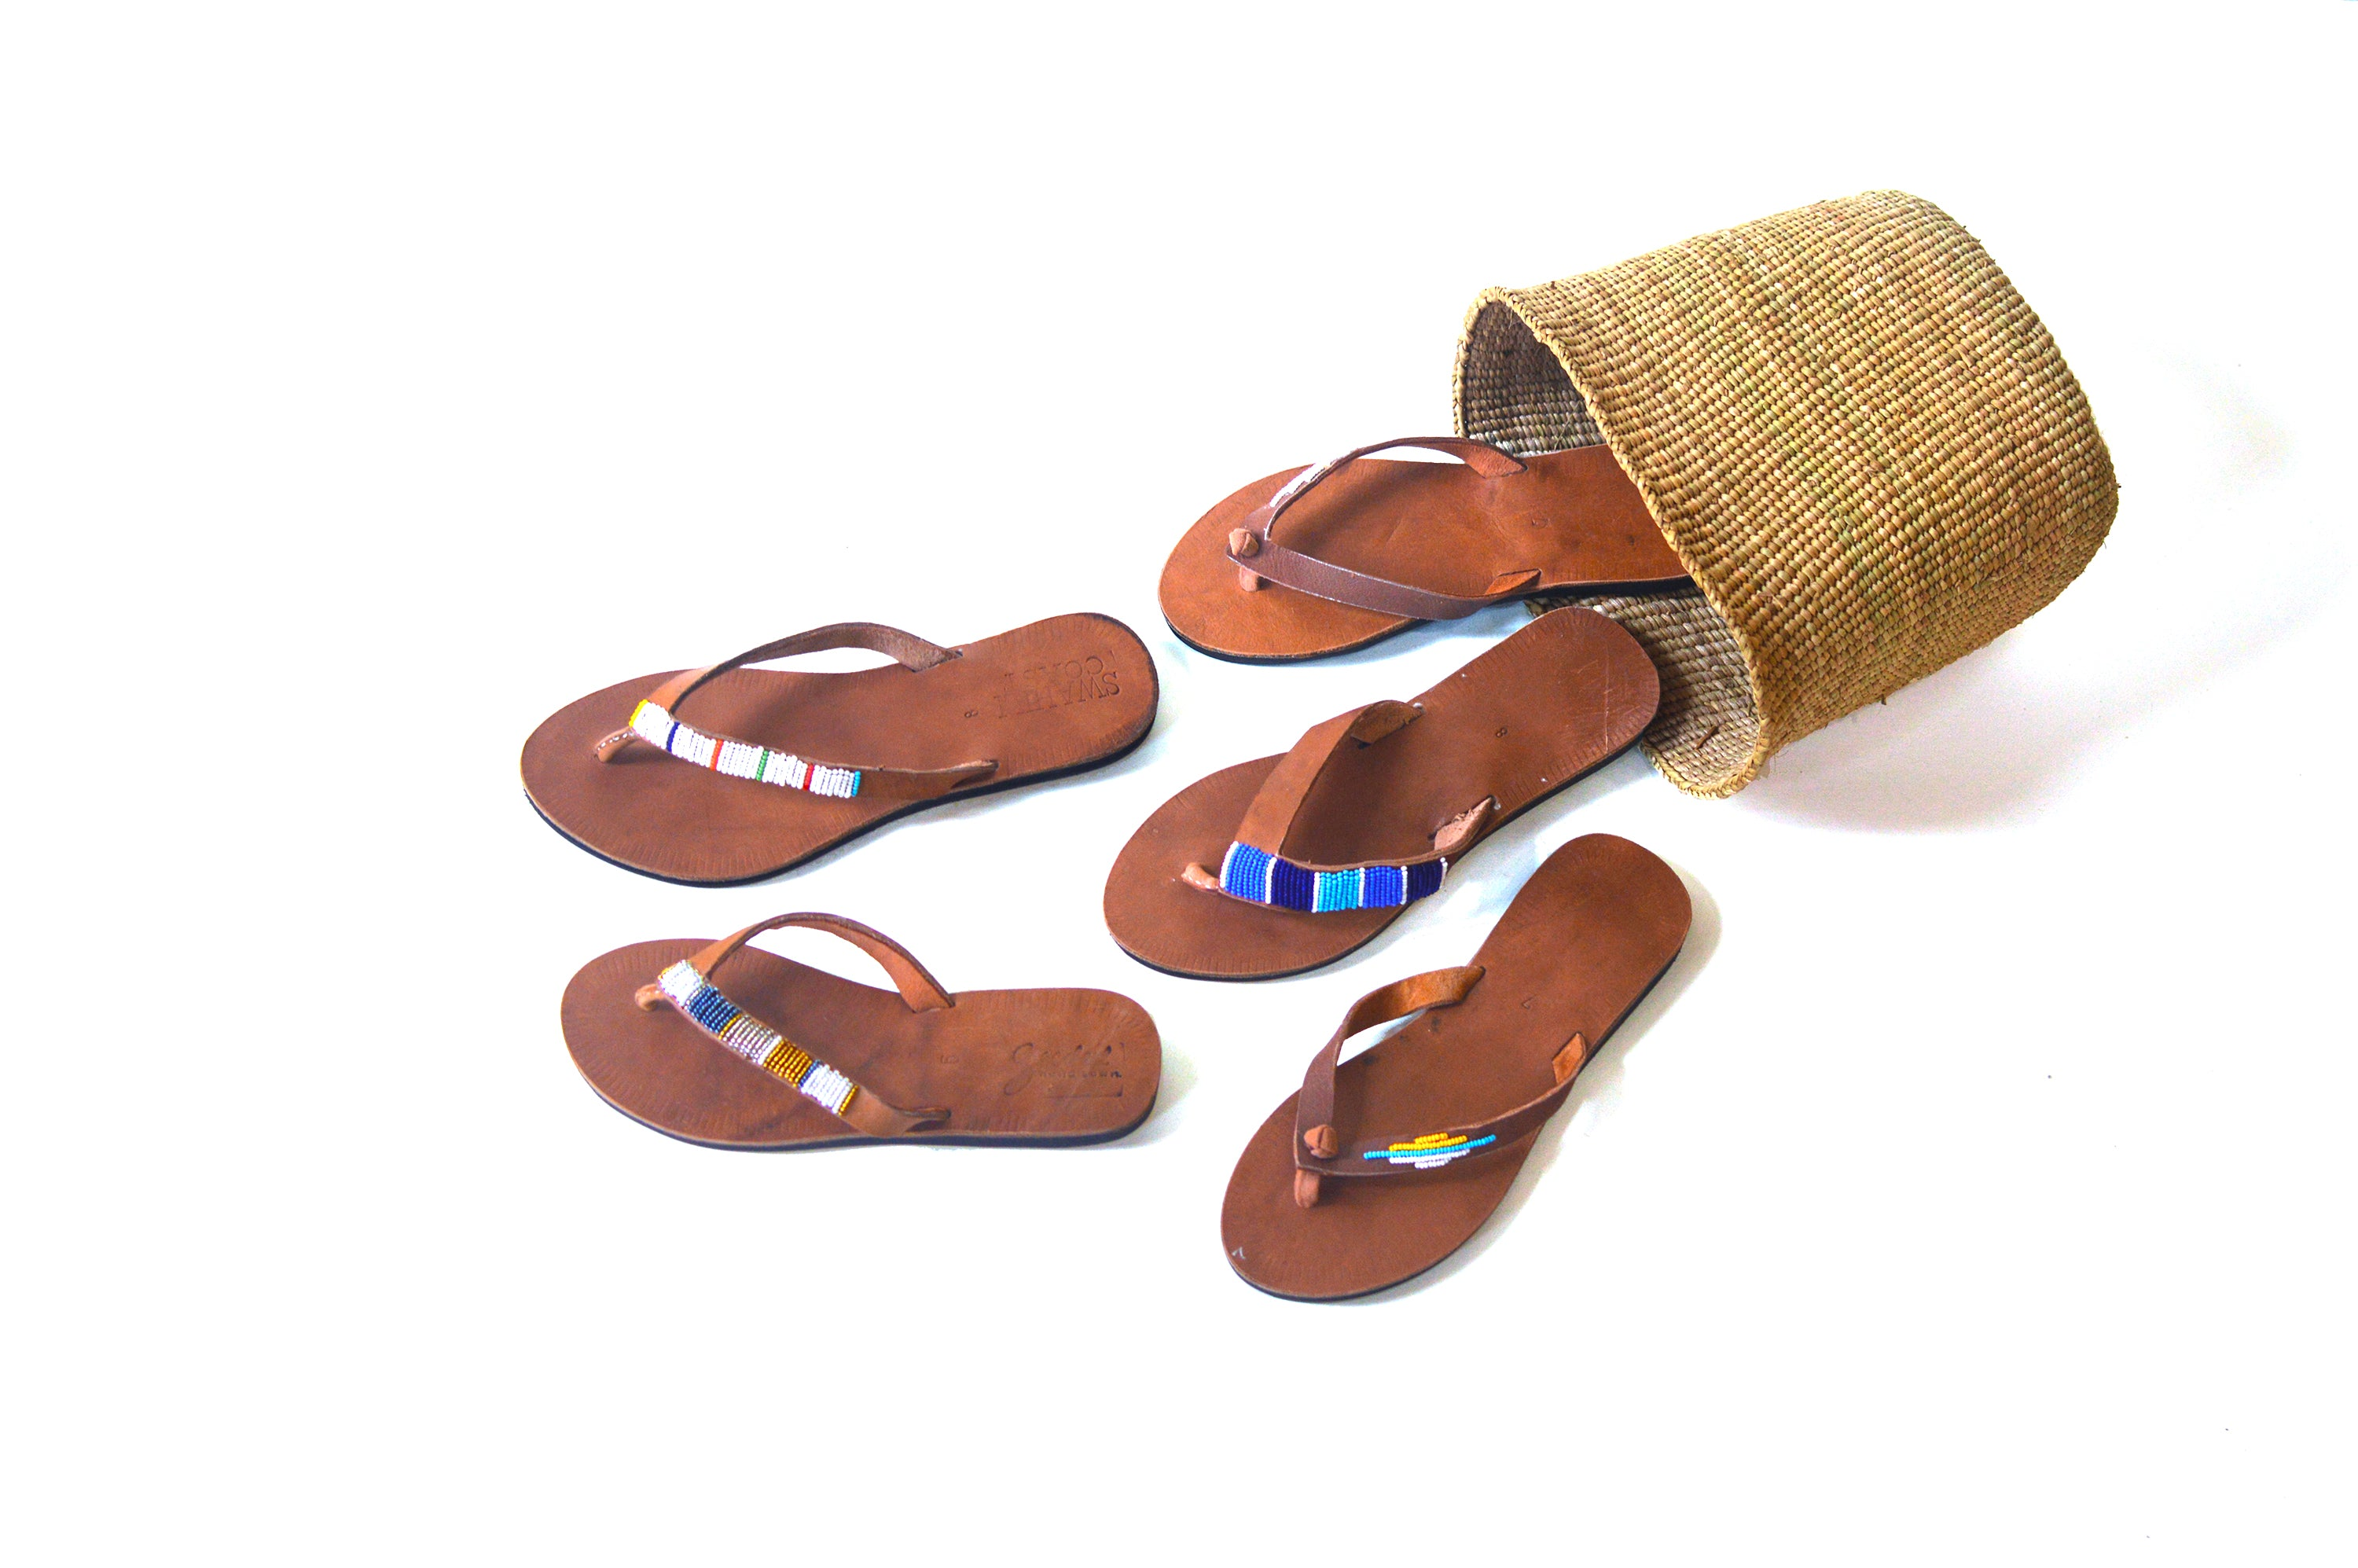 Swahili Coast Sandals. Fair trade accessories ethically handmade by empowered artisans in East Africa.